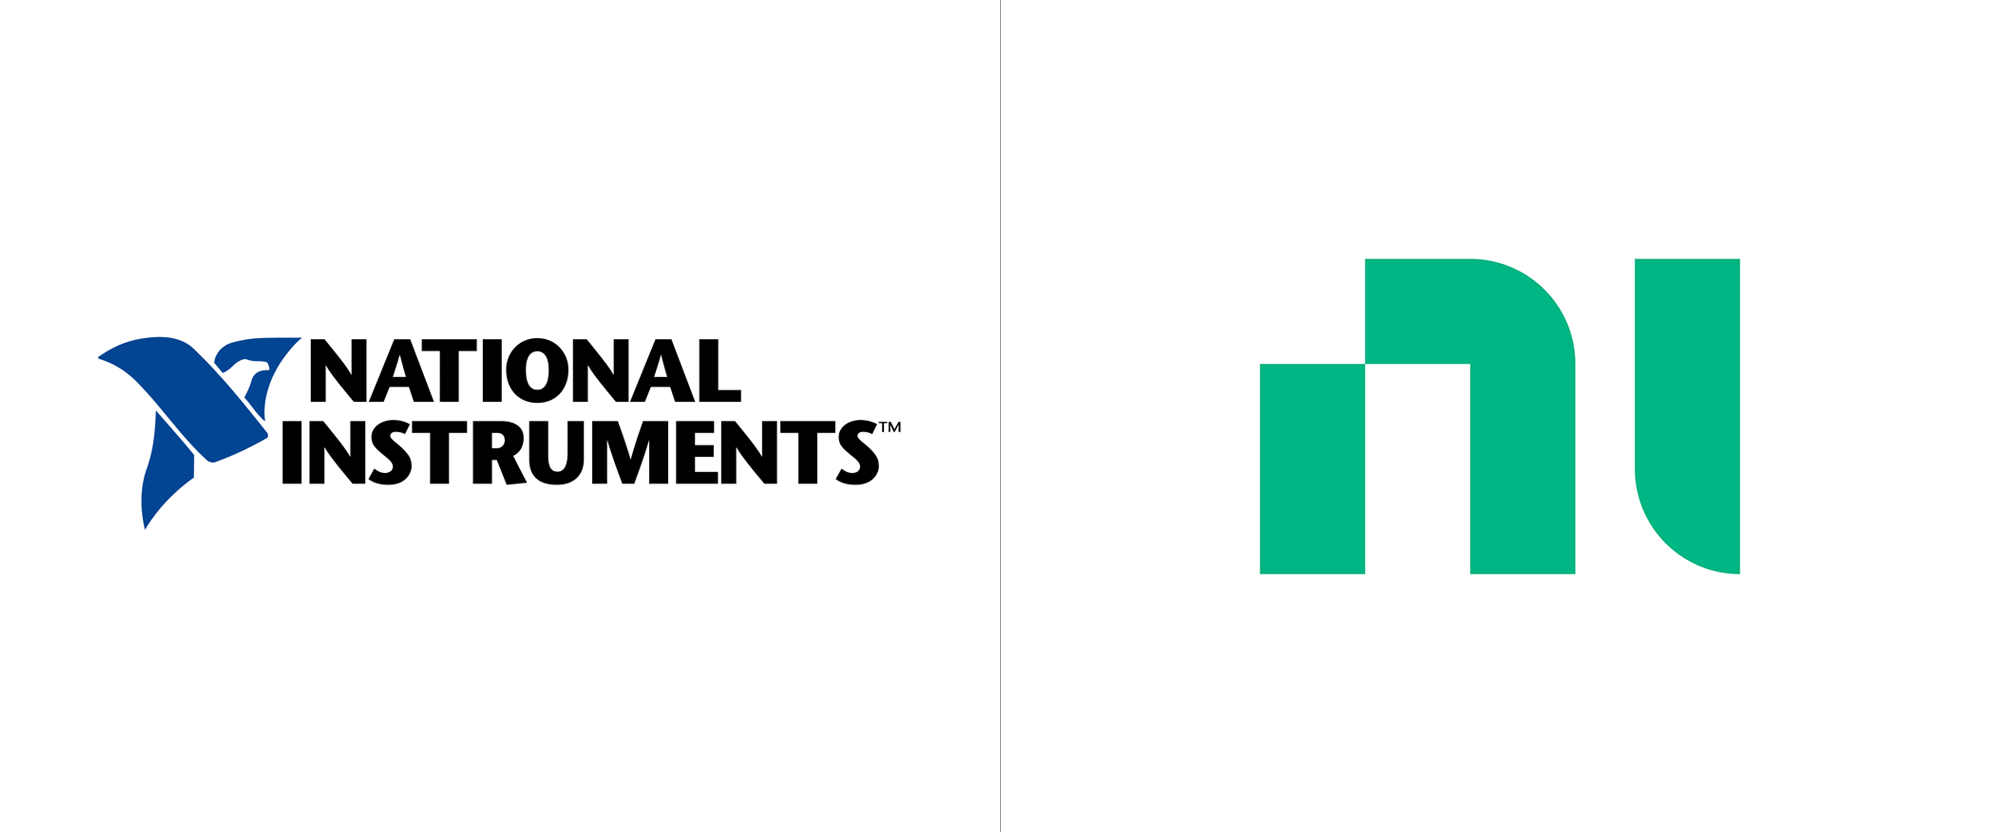 Follow-up: New Logo and Identity for NI by Gretel